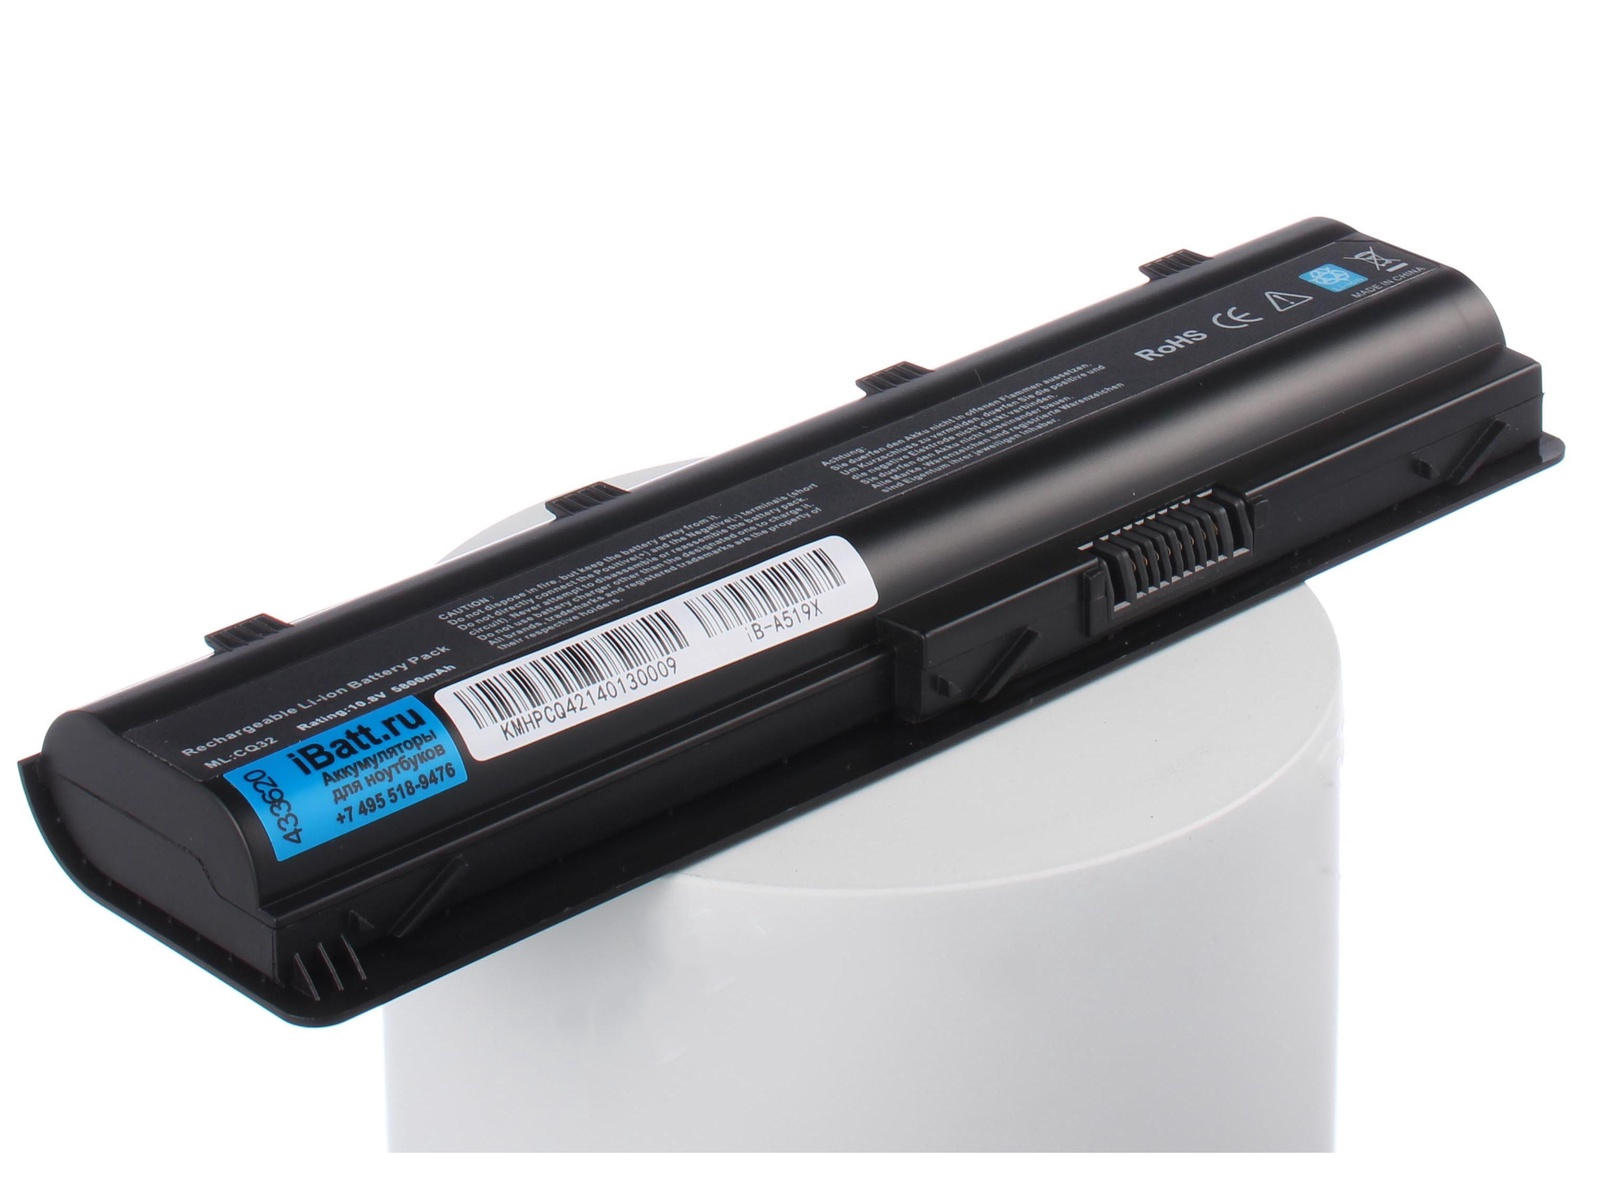 Аккумулятор для ноутбука iBatt для HP-Compaq Pavilion g7-1075dx, Pavilion g7-1310sr, Pavilion g7-1312nr, Pavilion g7-1338dx, Pavilion g7-1372sr, Pavilion g7-2022us, Pavilion g7-2028sr, Pavilion g7-2113er, Pavilion g7-2202er imax b6 battery balance charger with pd1205 12v 5a ac power adapter